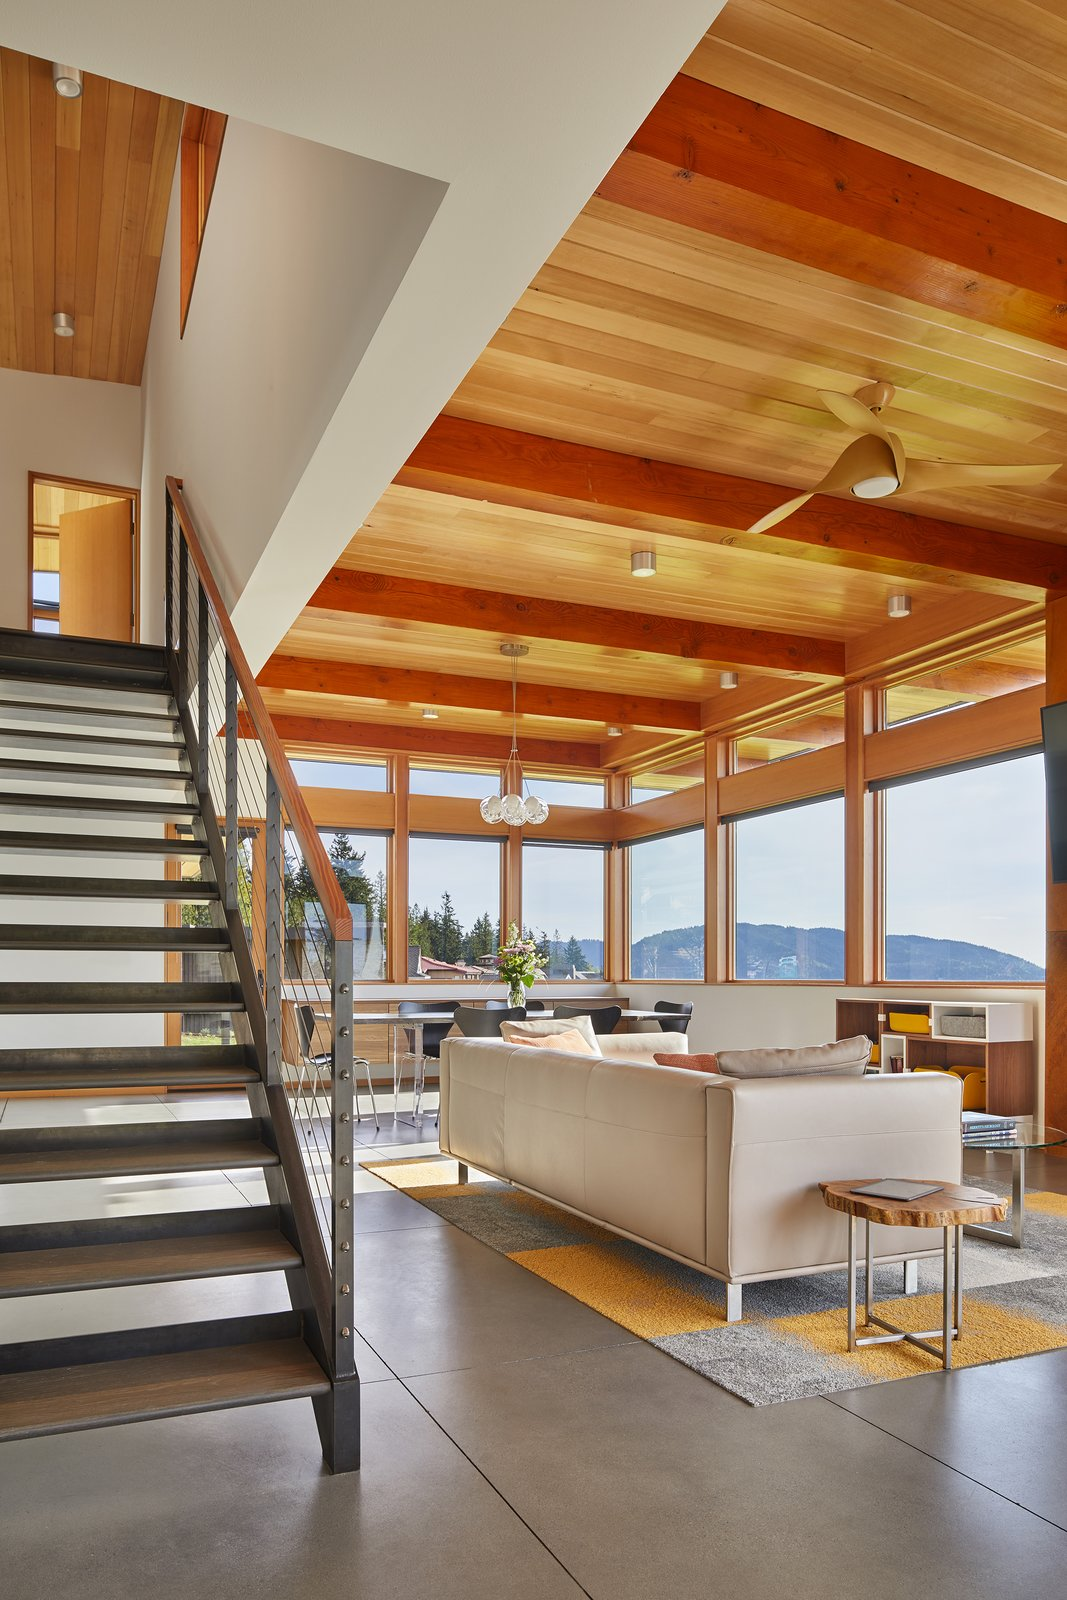 Tagged: Living Room, Concrete Floor, Sofa, and Ceiling Lighting.  Issaquah Highlands Residence by Studio Zerbey Architecture